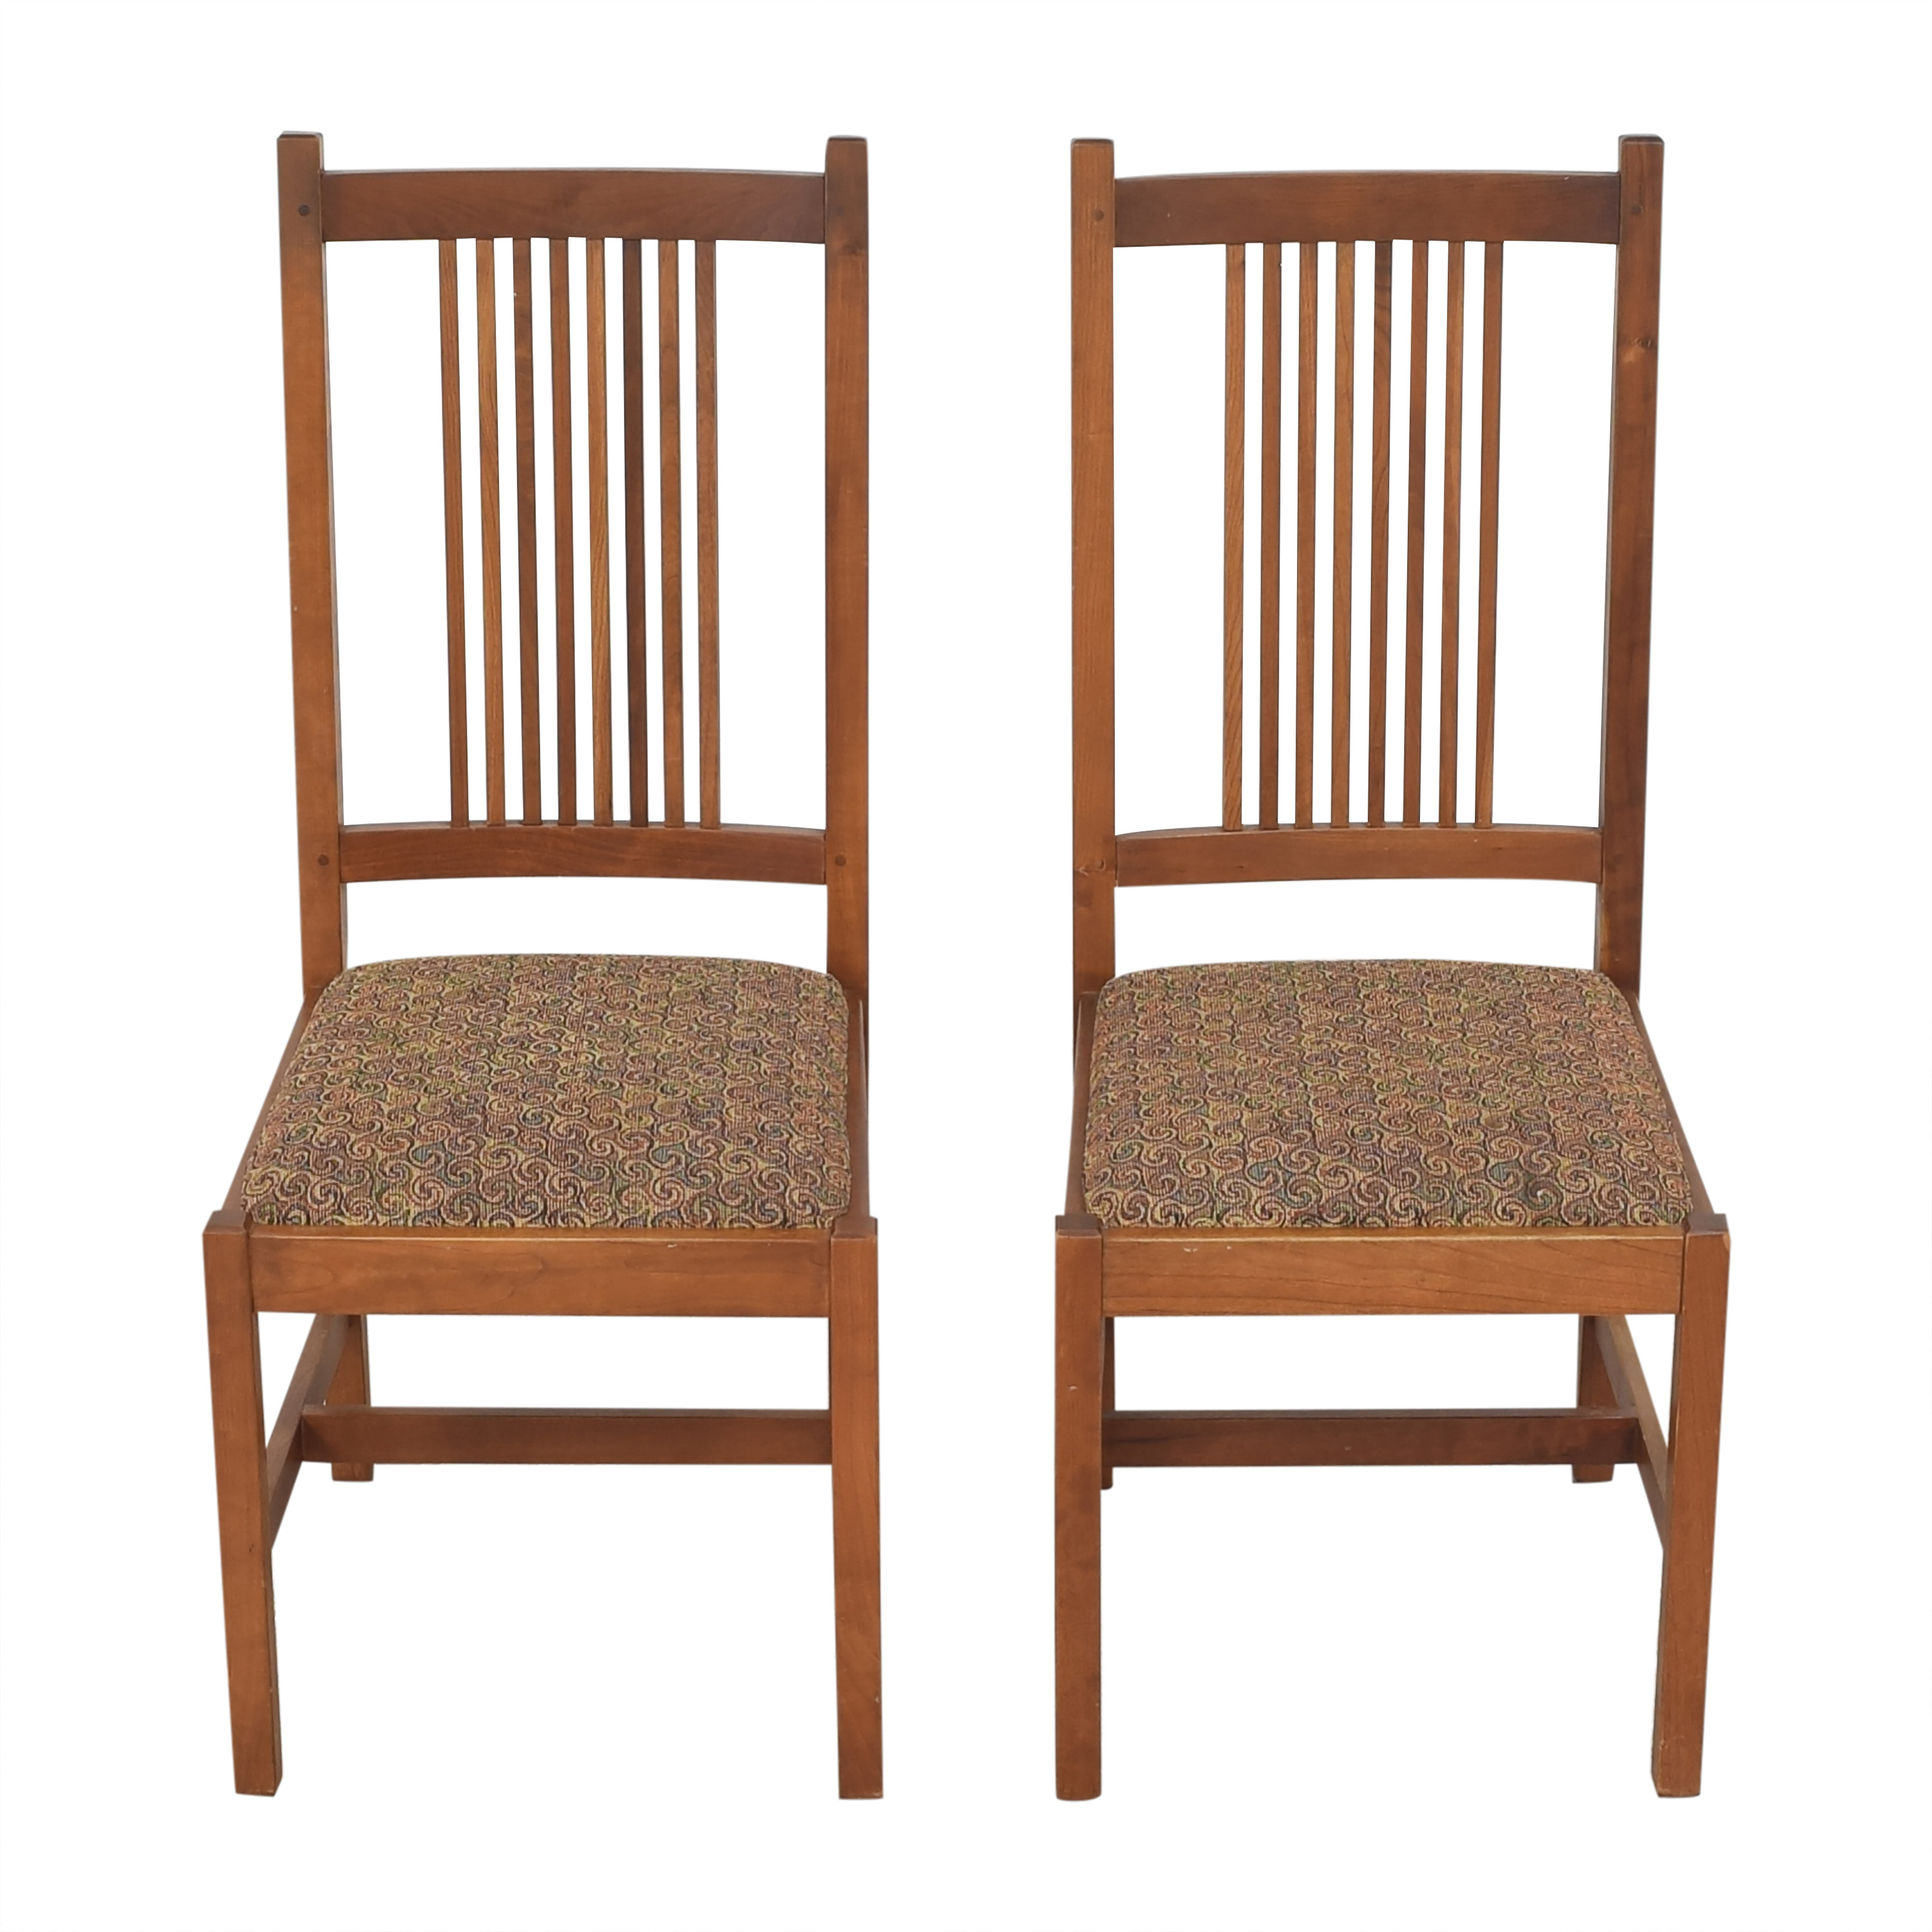 buy Stickley Furniture Shaker Dining Side Chairs Stickley Furniture